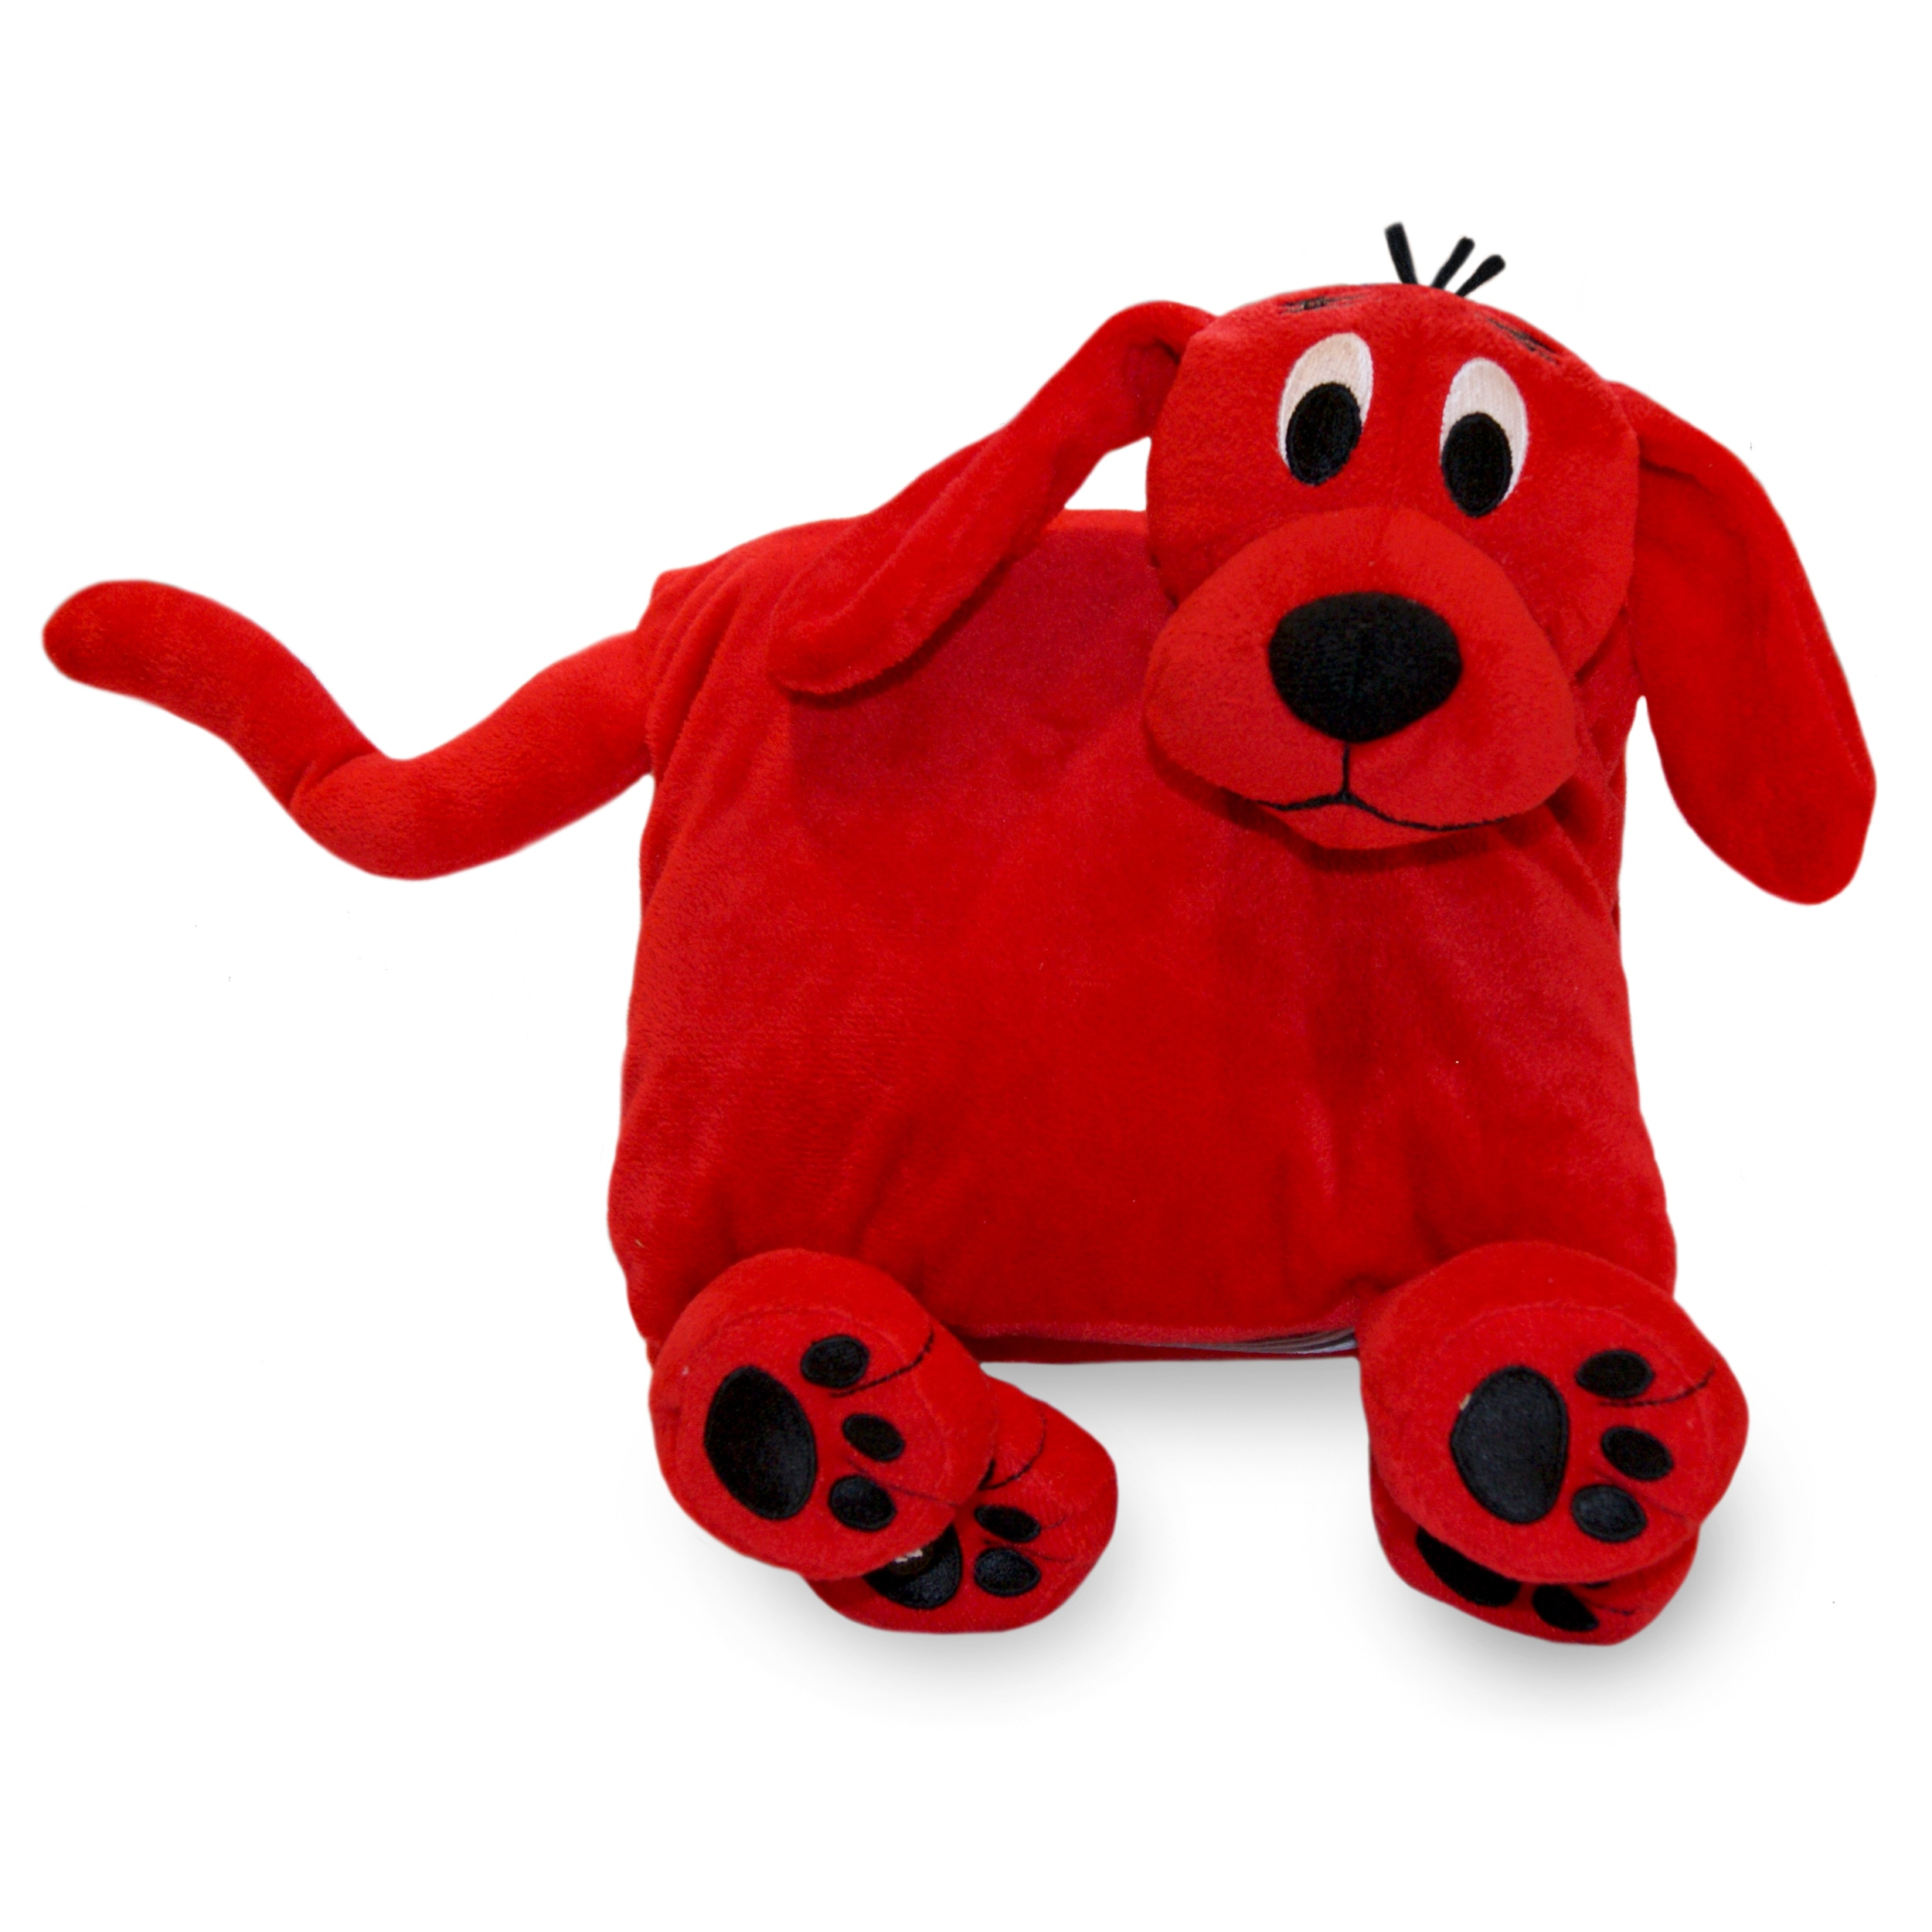 Zoobies 'Clifford the Big Red Dog' Book Buddy